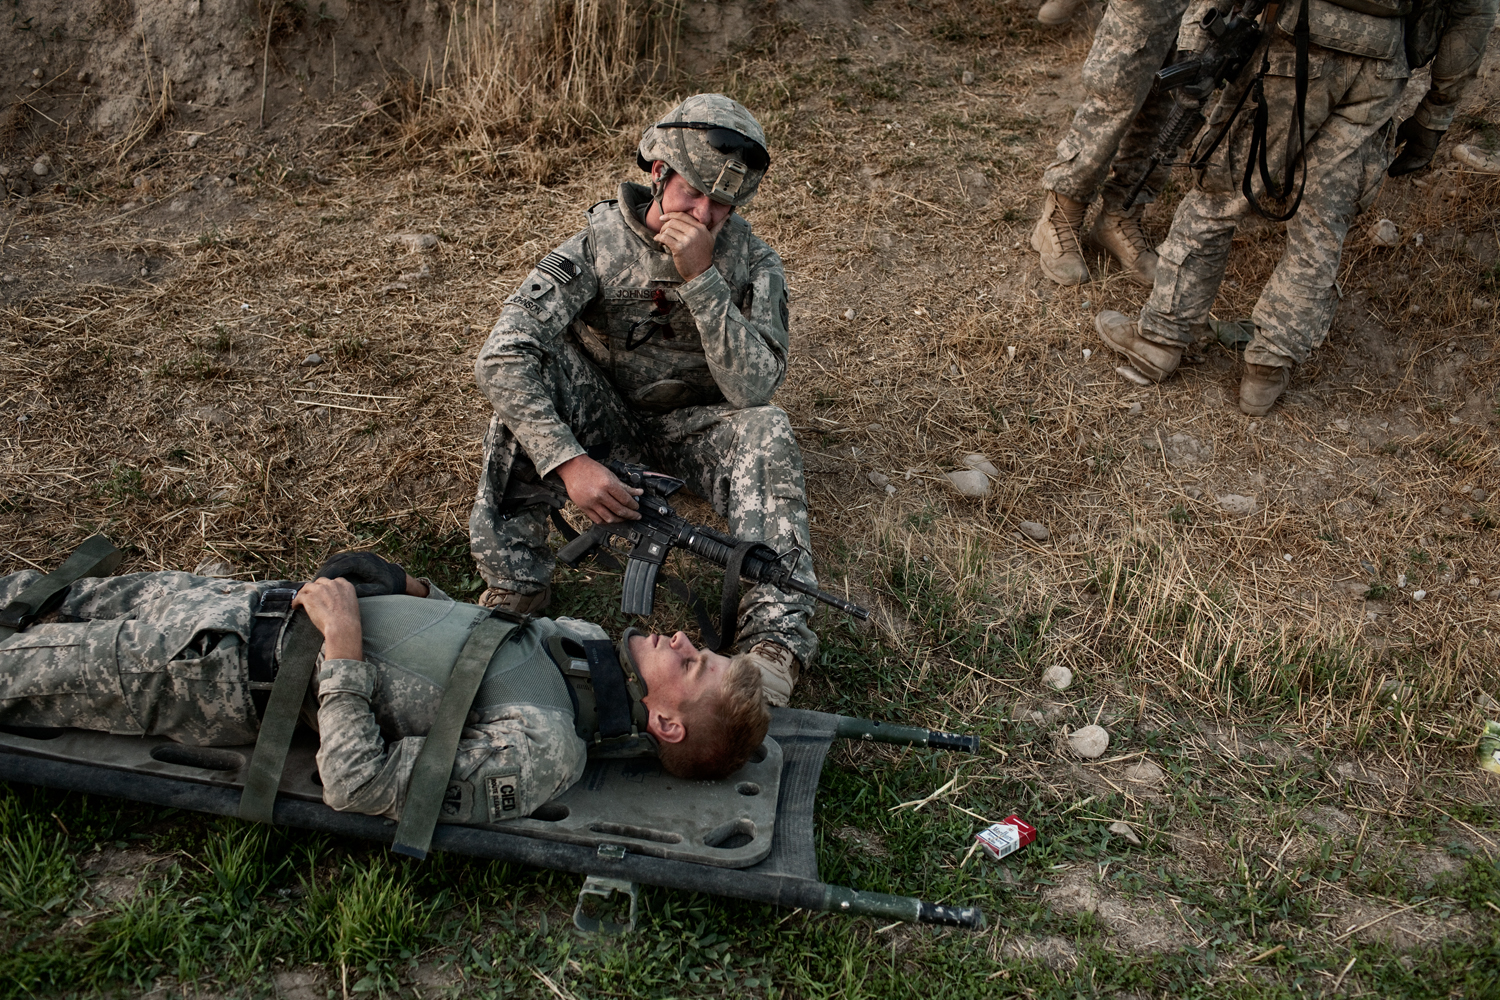 U.S. Army Specialist T.J. Fecteau lies on a stretcher after being concussed in animprovised explosive device attack on his vehicle in the Tangi Valley, Wardak Province, Afghanistan.